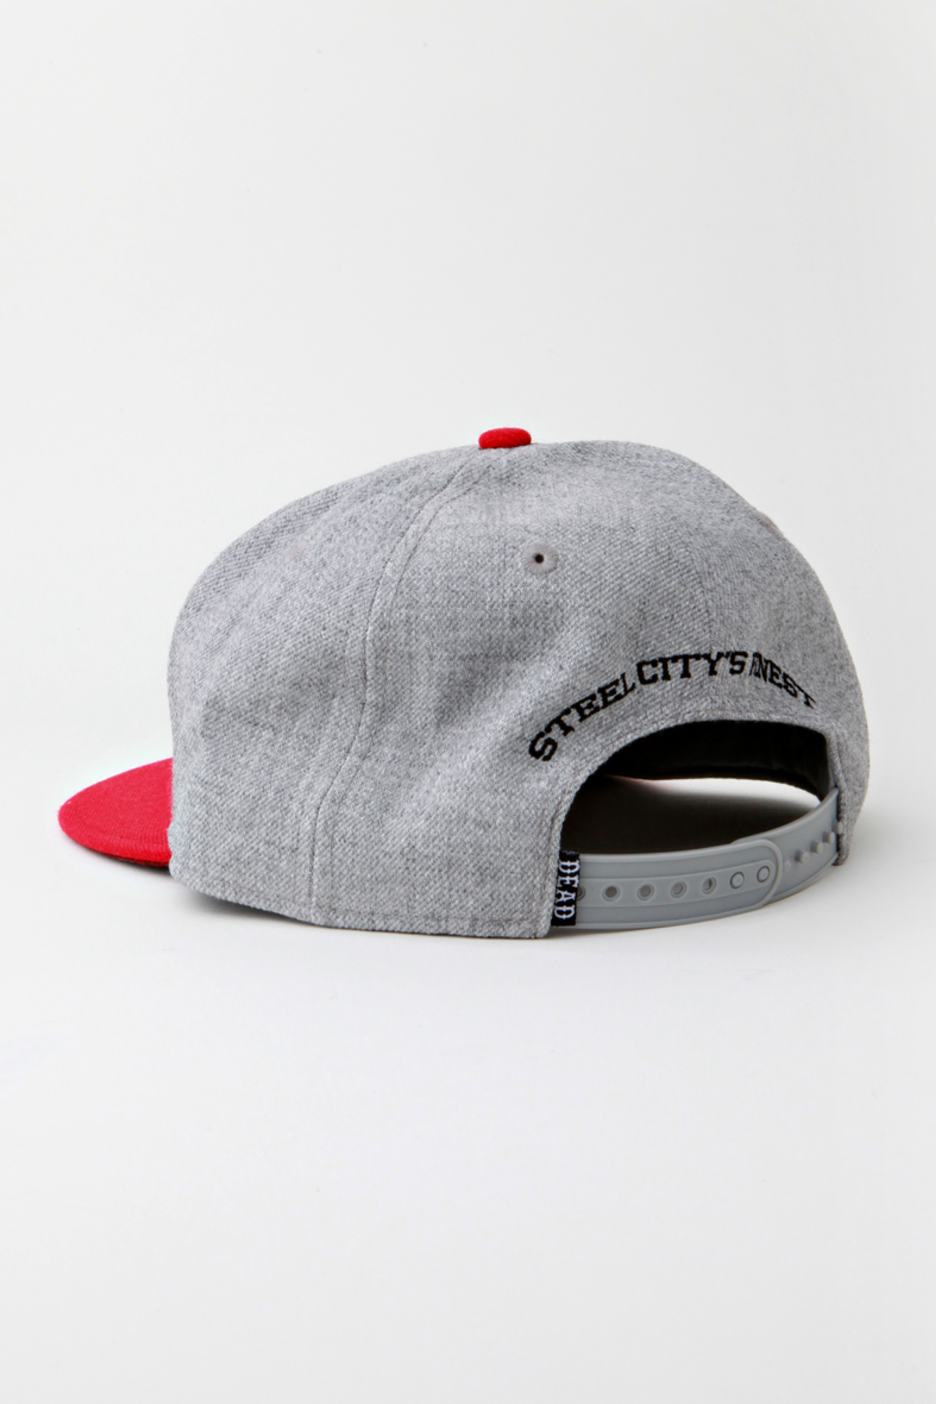 Drop Dead - War Pig Grey Red Snapback - Cappello - Liveyourmusic ... 75f2a943b51d